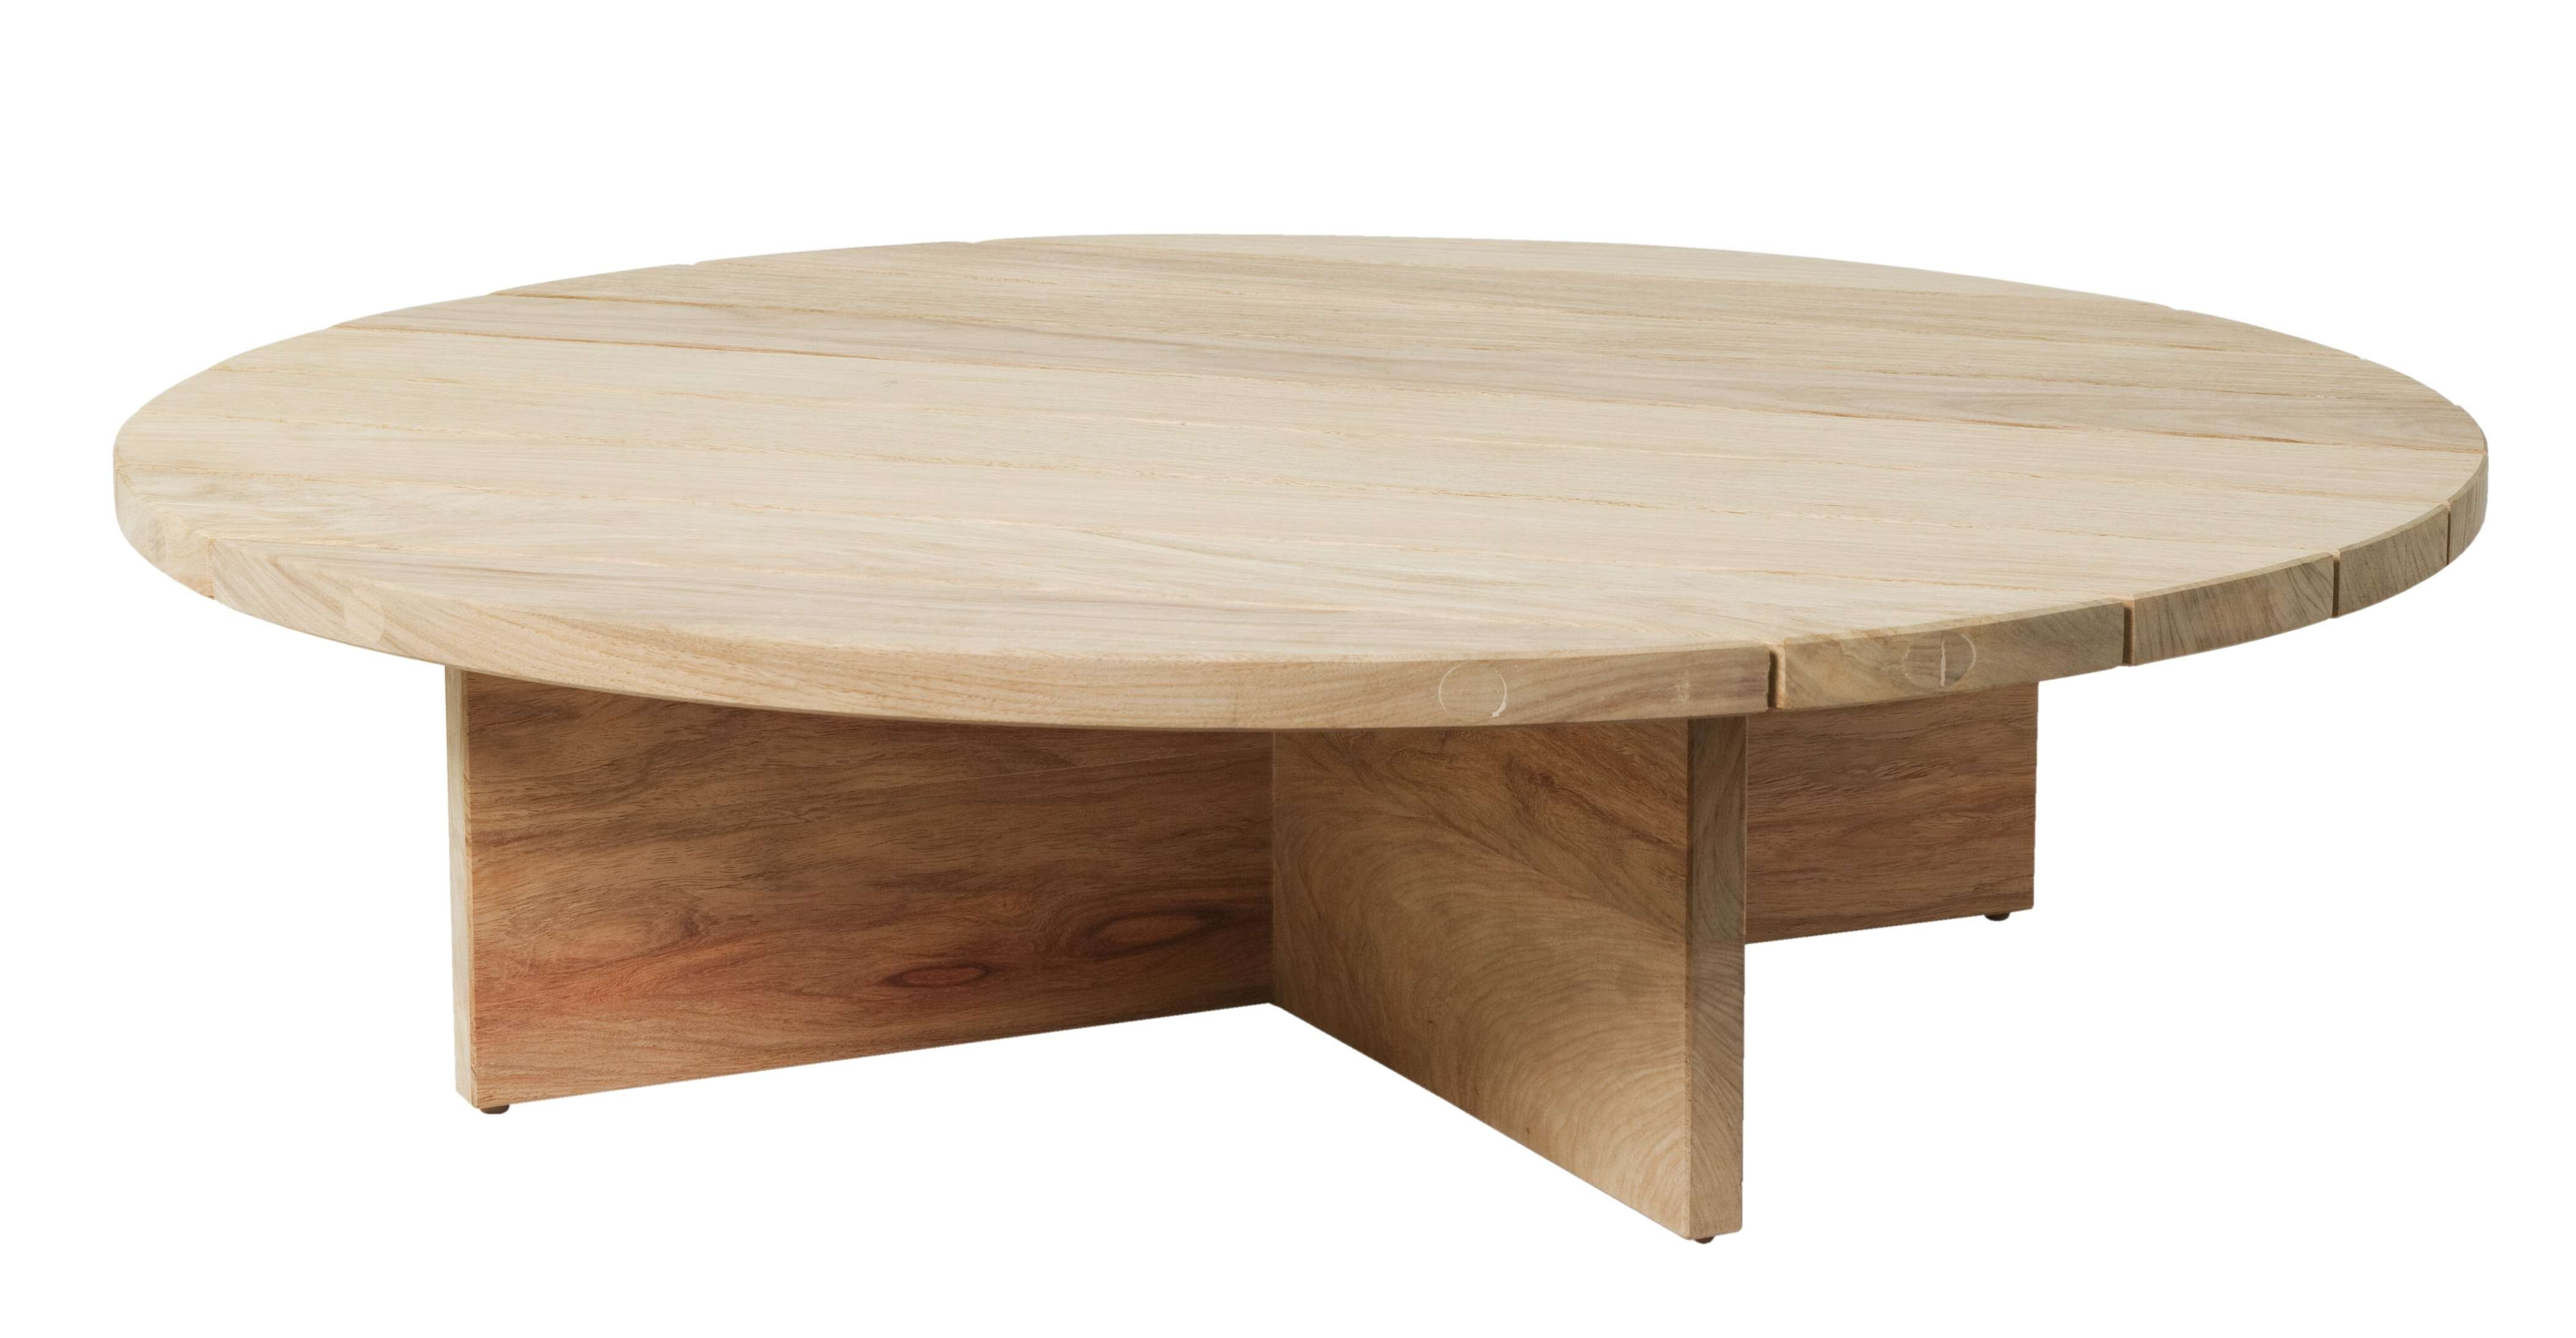 Coffee Tables : Large Round Coffee Table Tray Home Decorati Thippo Pertaining To Well Known Big Low Coffee Tables (View 7 of 20)